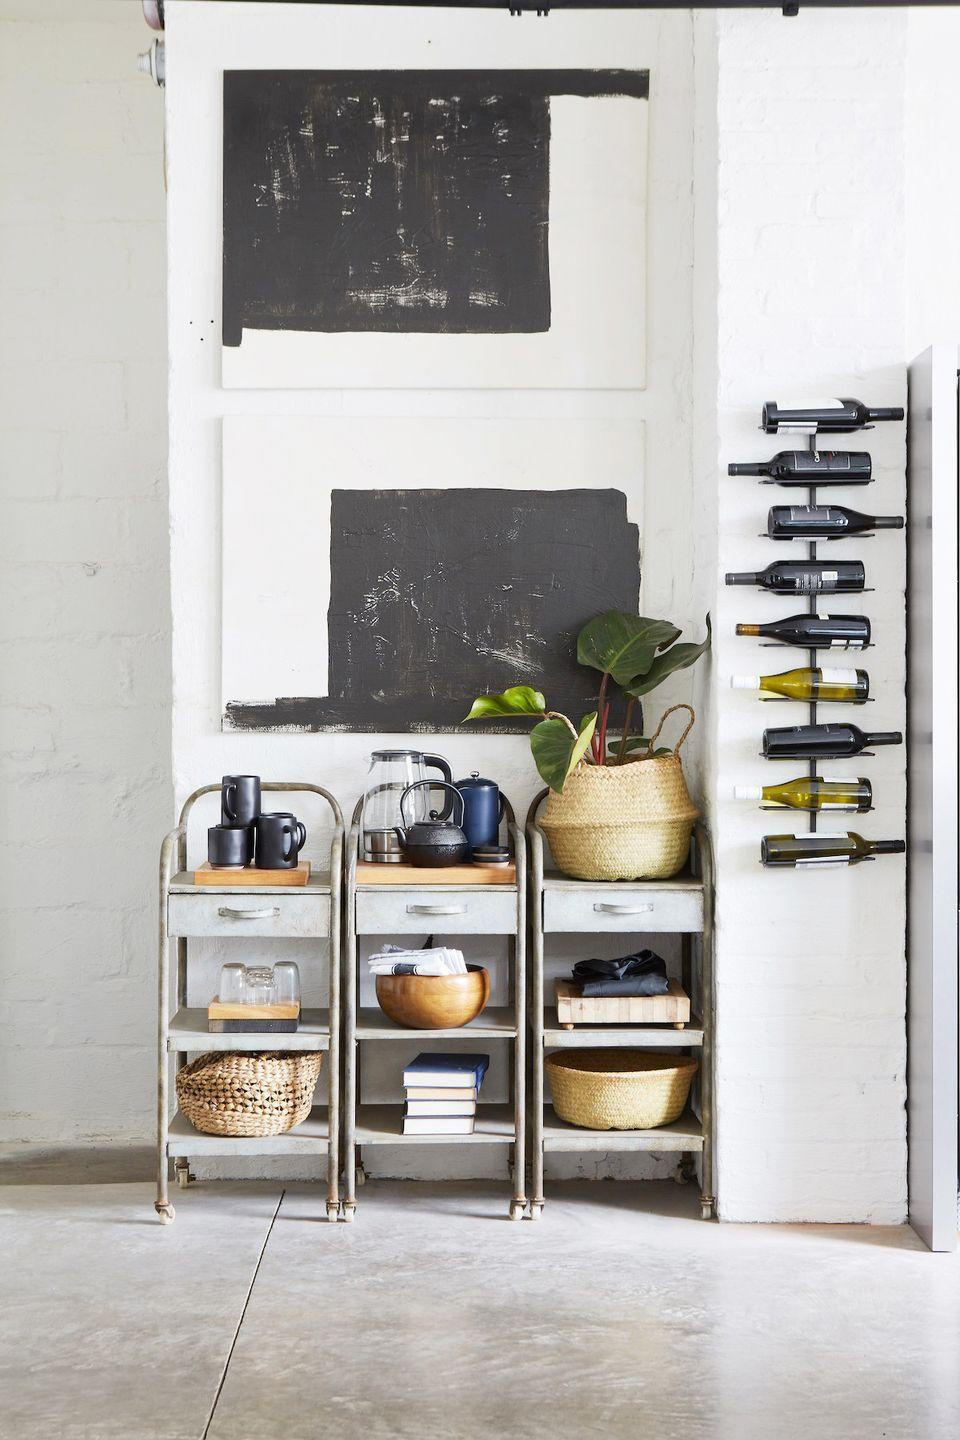 """<p>No space, no problem. Use a wall unit like this one in a kitchen designed by <a href=""""https://leanneford.com/"""" rel=""""nofollow noopener"""" target=""""_blank"""" data-ylk=""""slk:Leanne Ford Interiors"""" class=""""link rapid-noclick-resp"""">Leanne Ford Interiors</a>. And there's a reason they bottles are organized horizontally: storing them like this keeps oxygen from slipping in through the cork. </p>"""